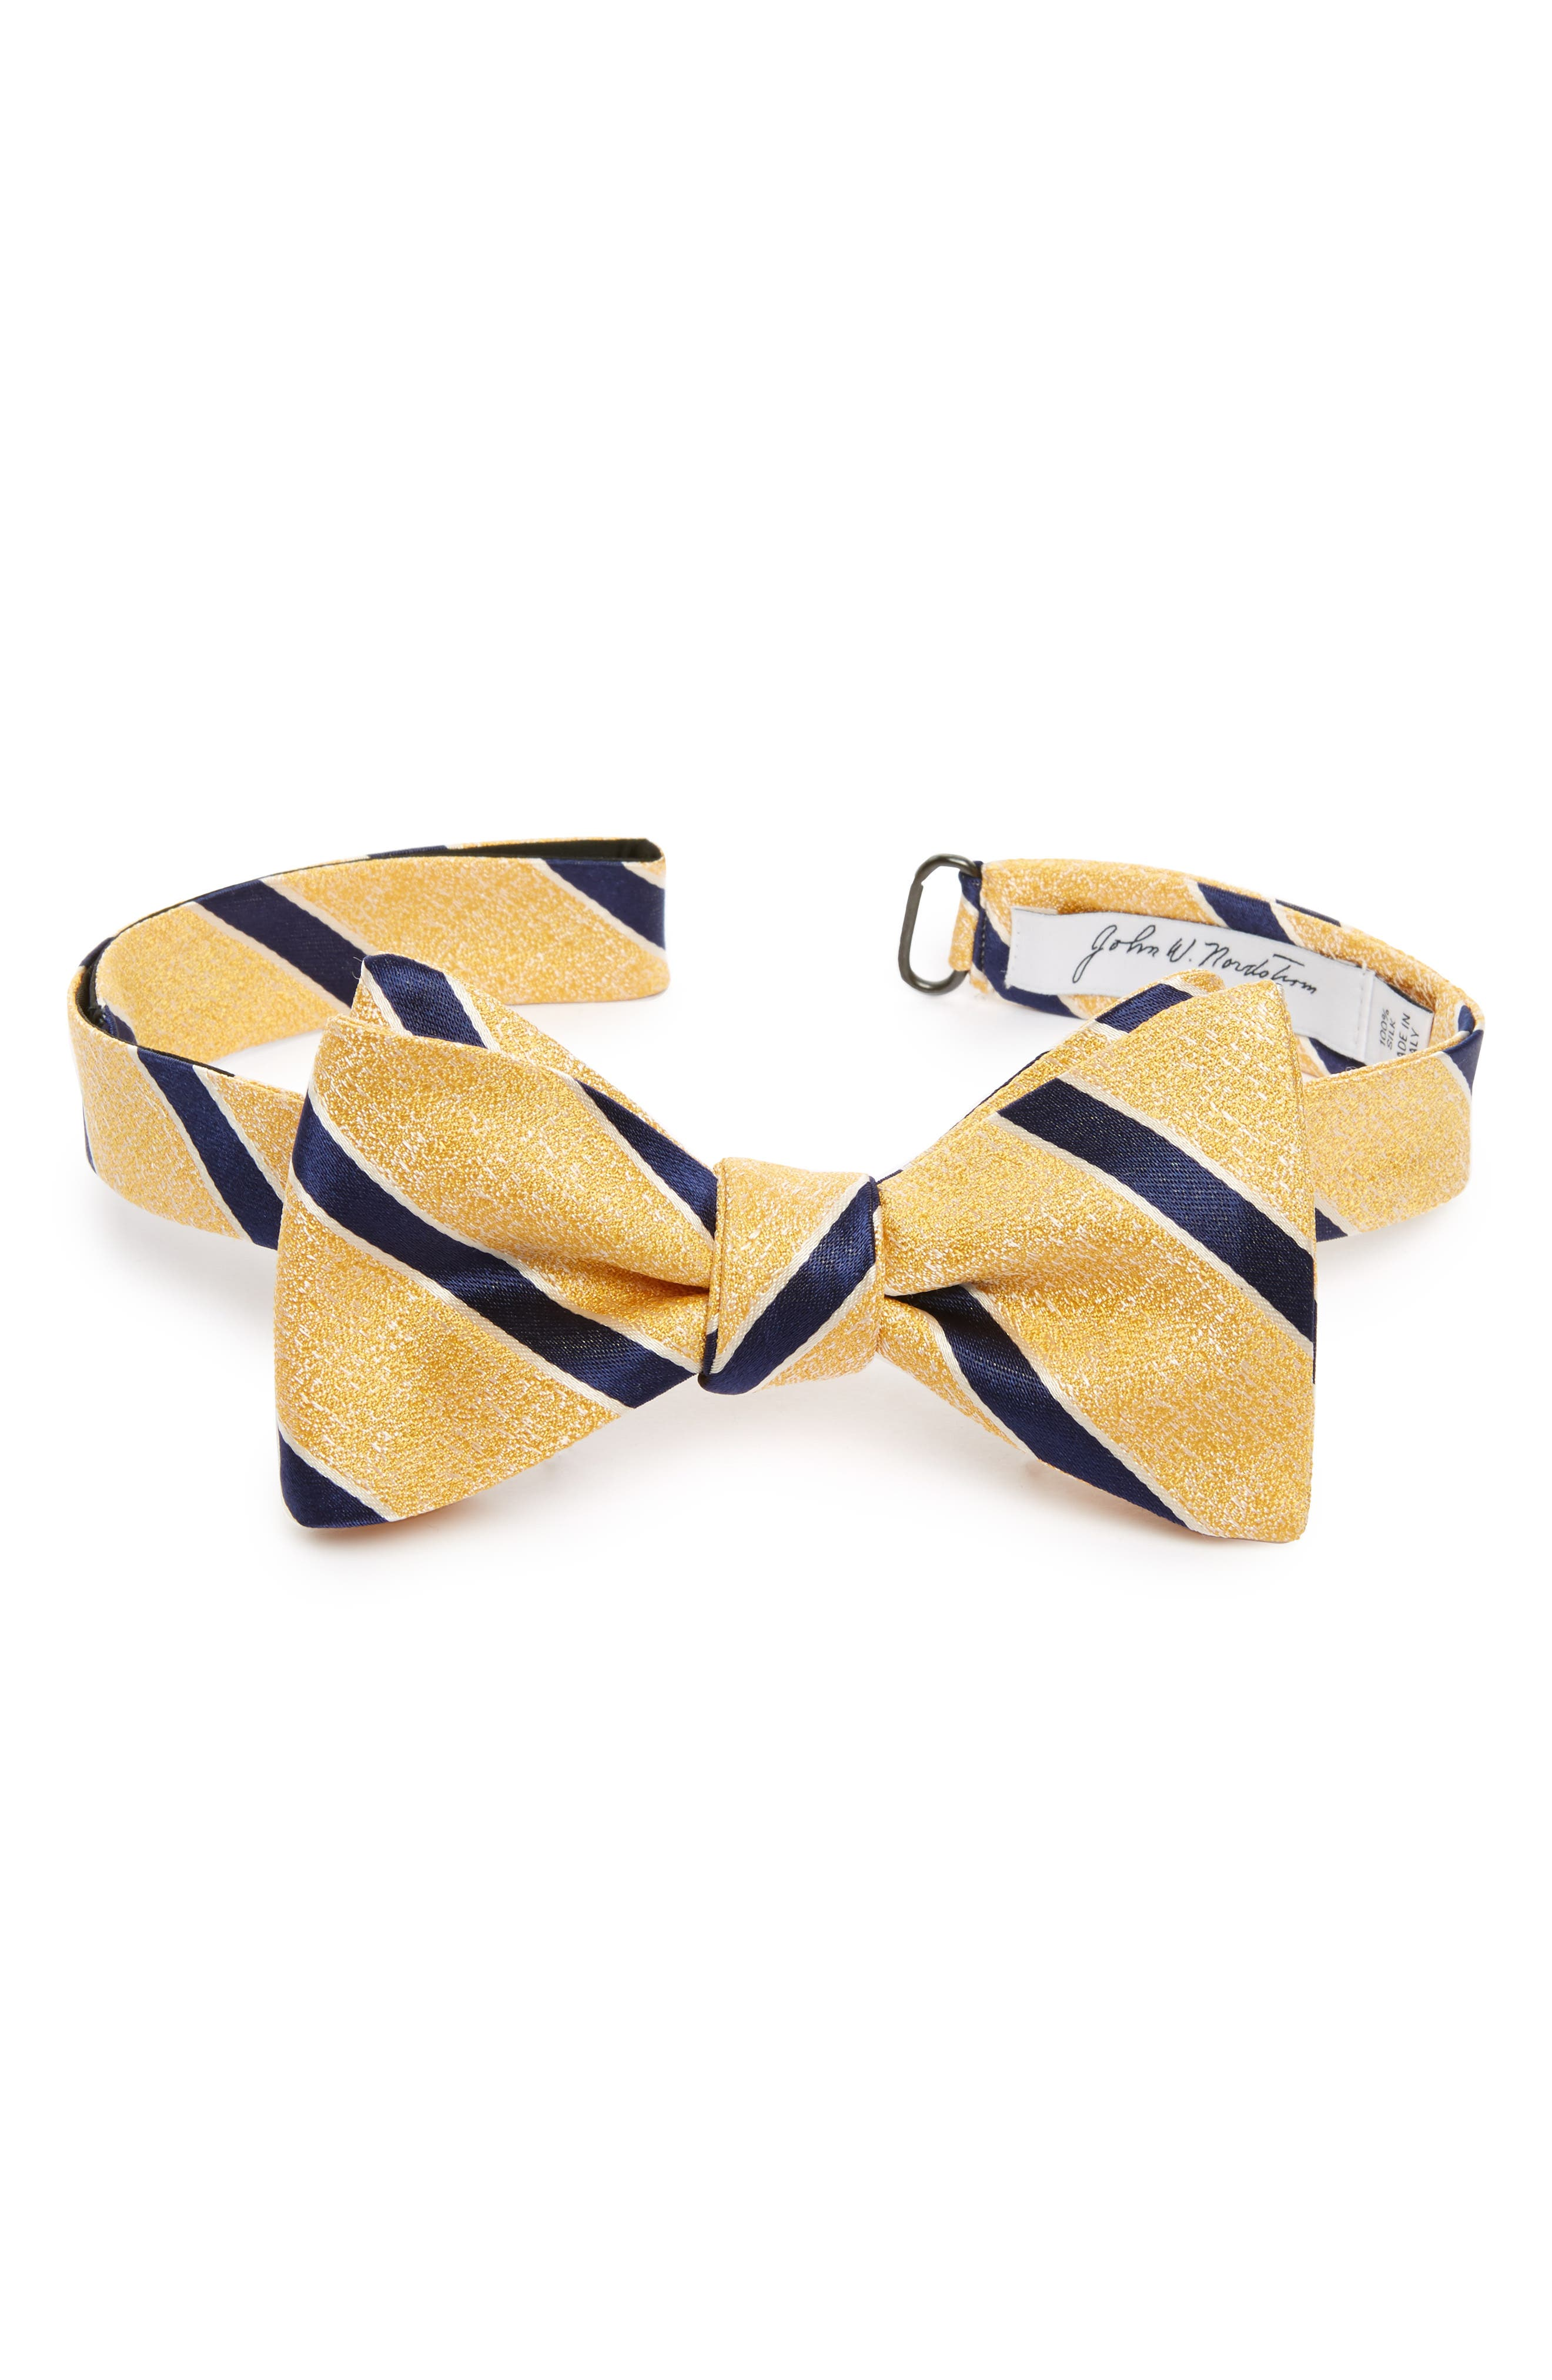 Alternate Image 1 Selected - John W. Nordstrom® Stripe Silk Bow Tie